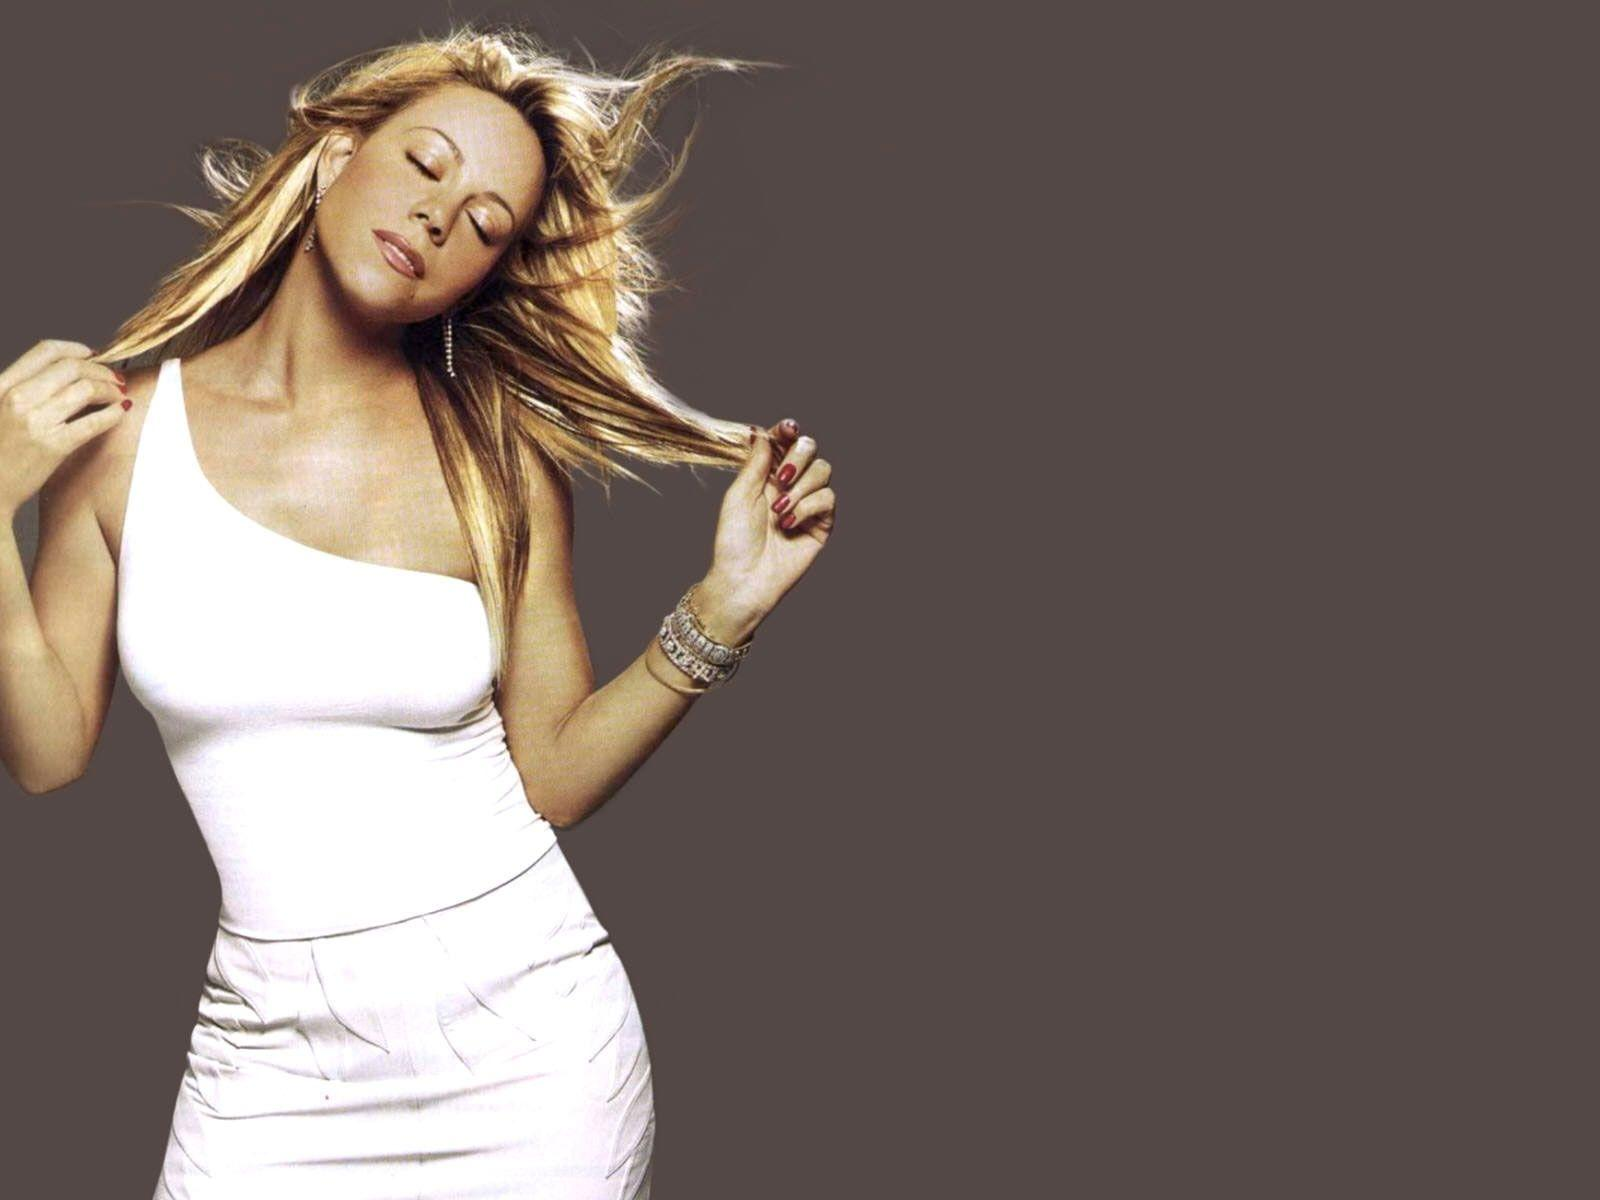 Mariah Carey Wallpapers HD Backgrounds